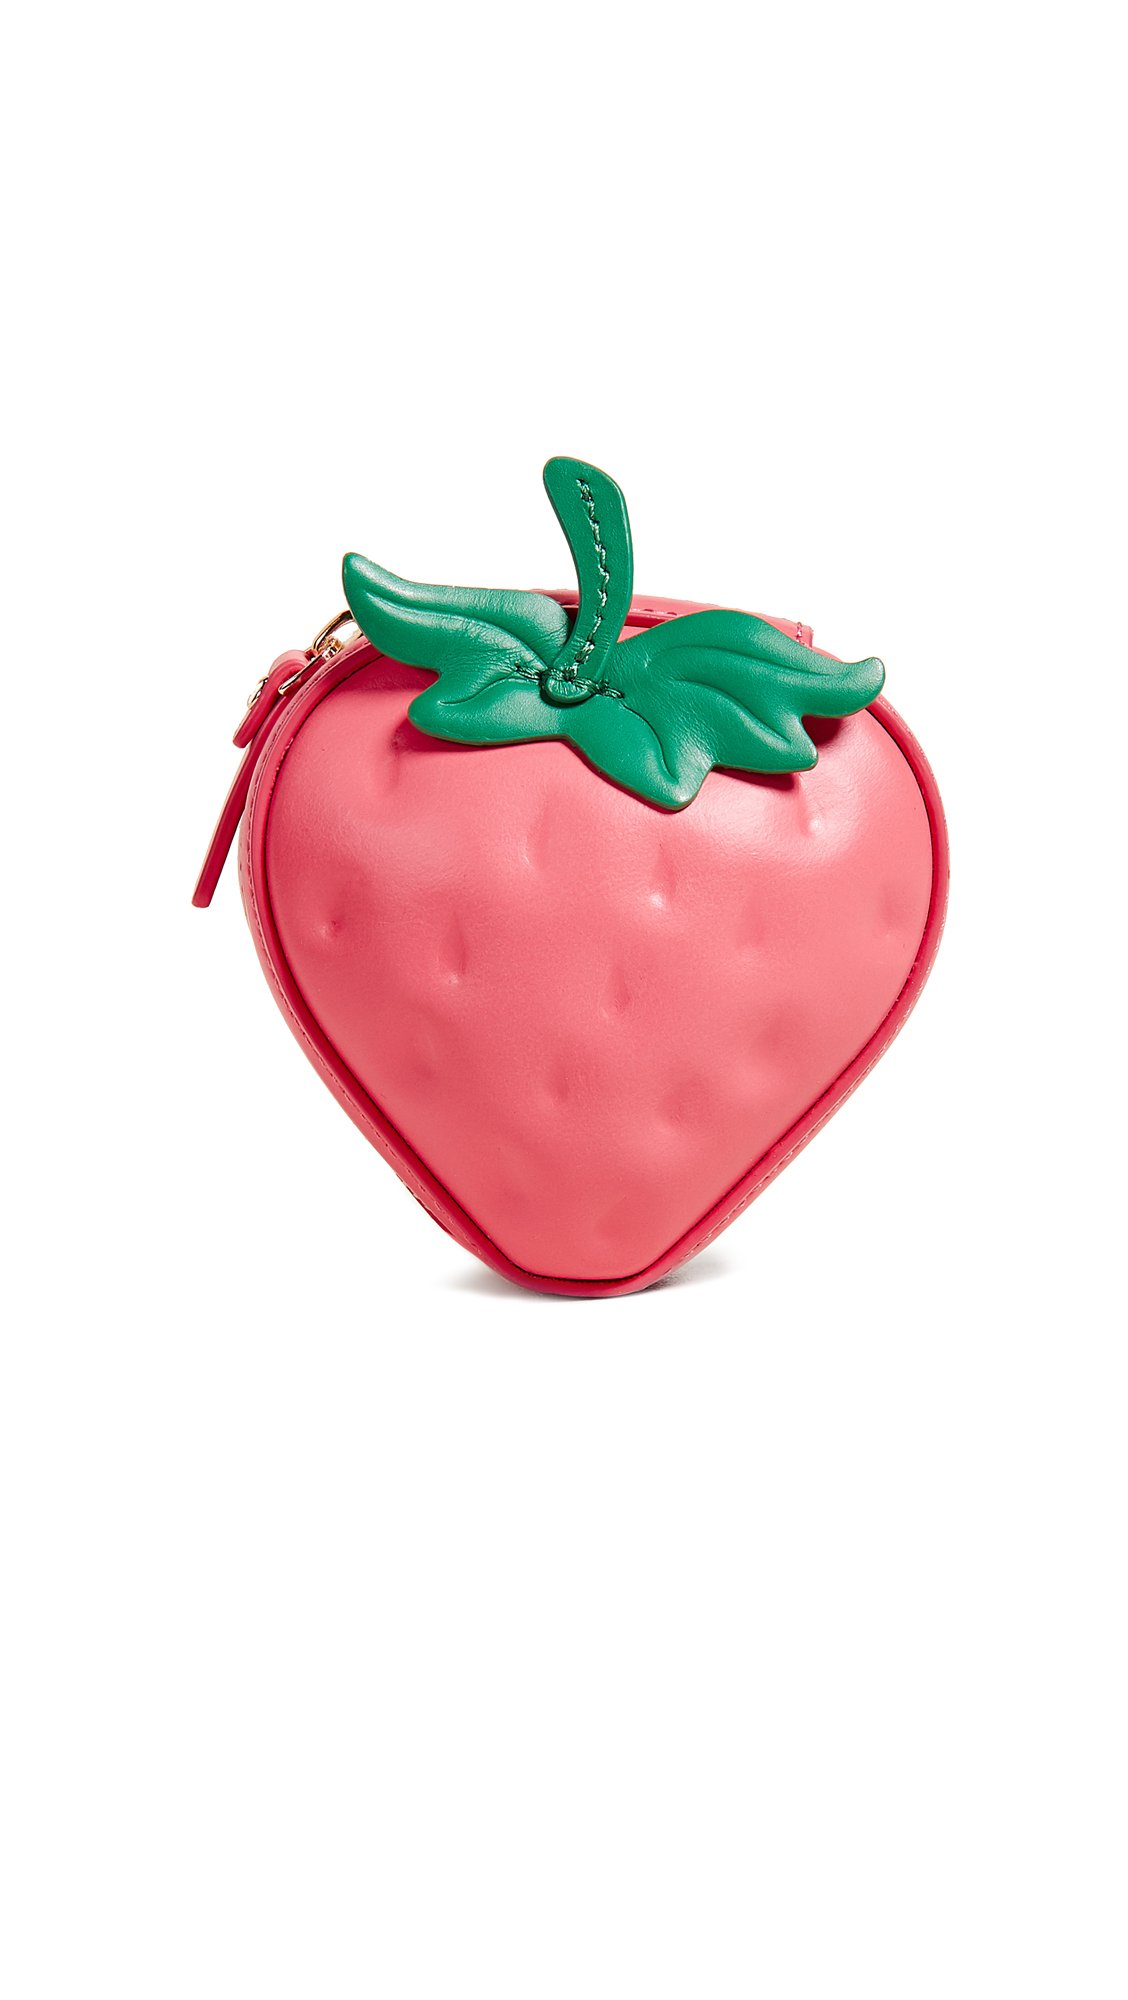 Kate Spade New York Women's Picnic Perfect 3D Strawberry Coin Purse, Multi, One Size by Kate Spade New York